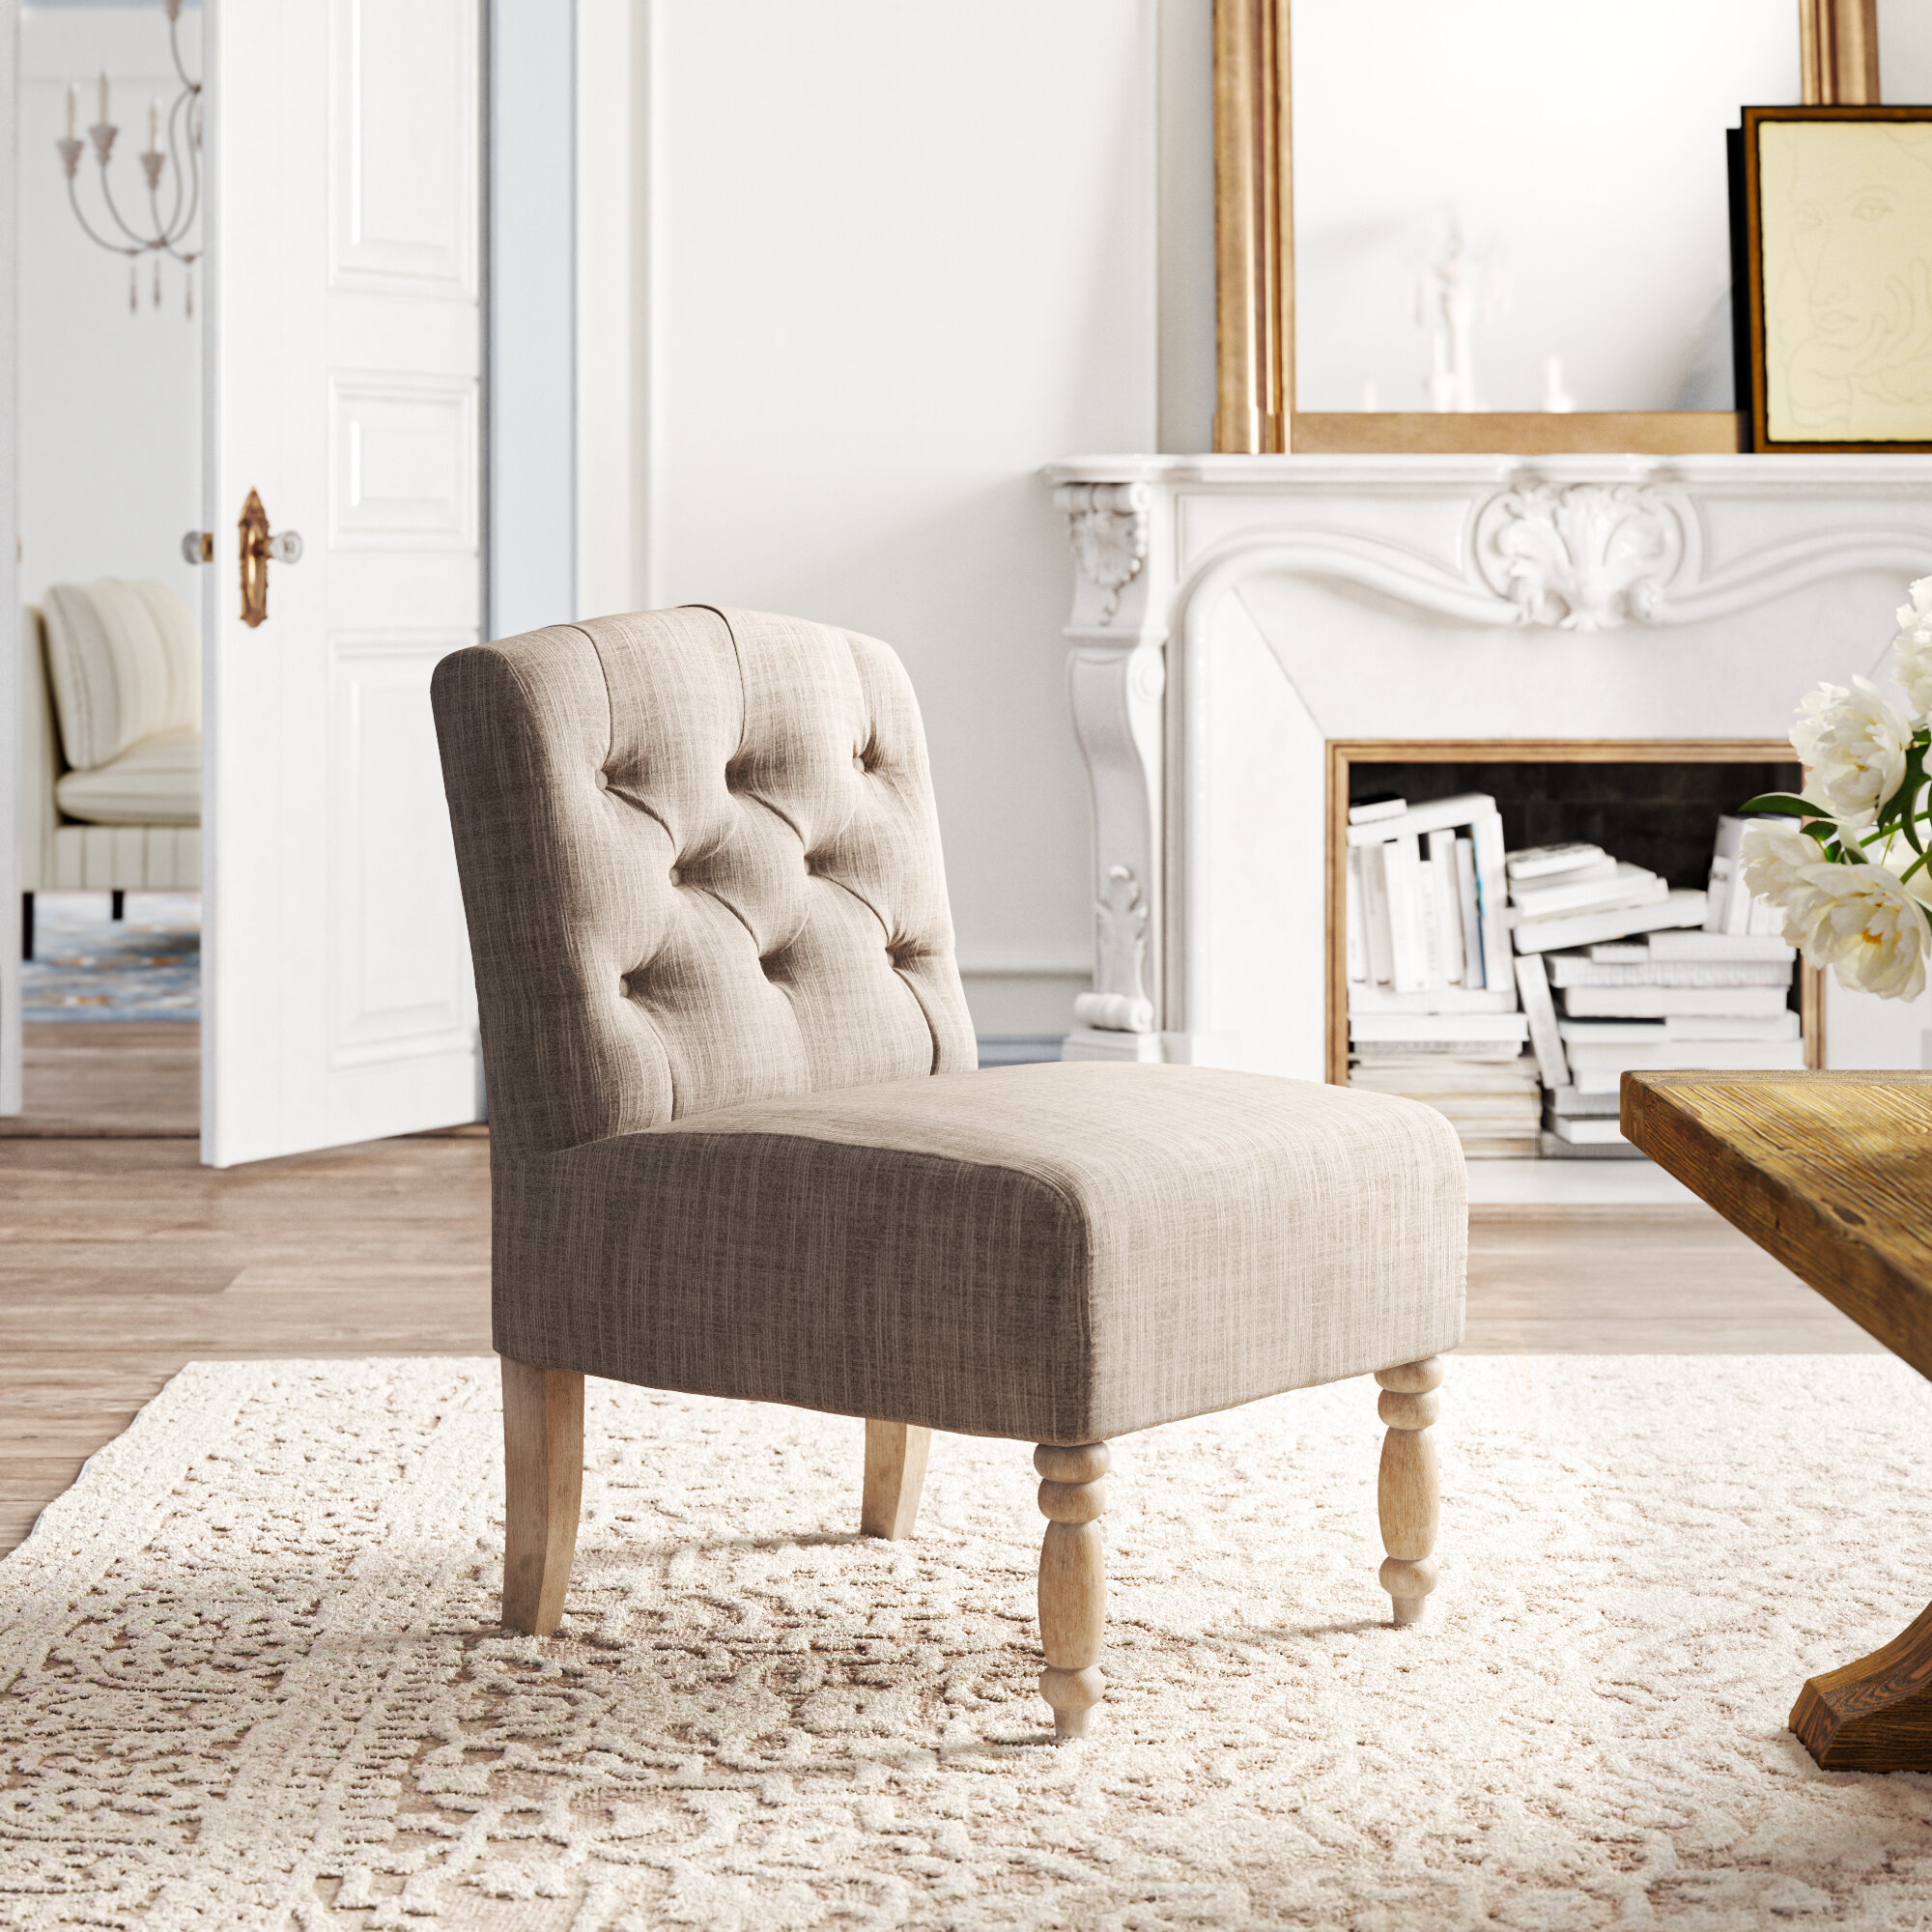 Slipper Chairs | Wayfair Throughout Gozzoli Slipper Chairs (View 5 of 15)